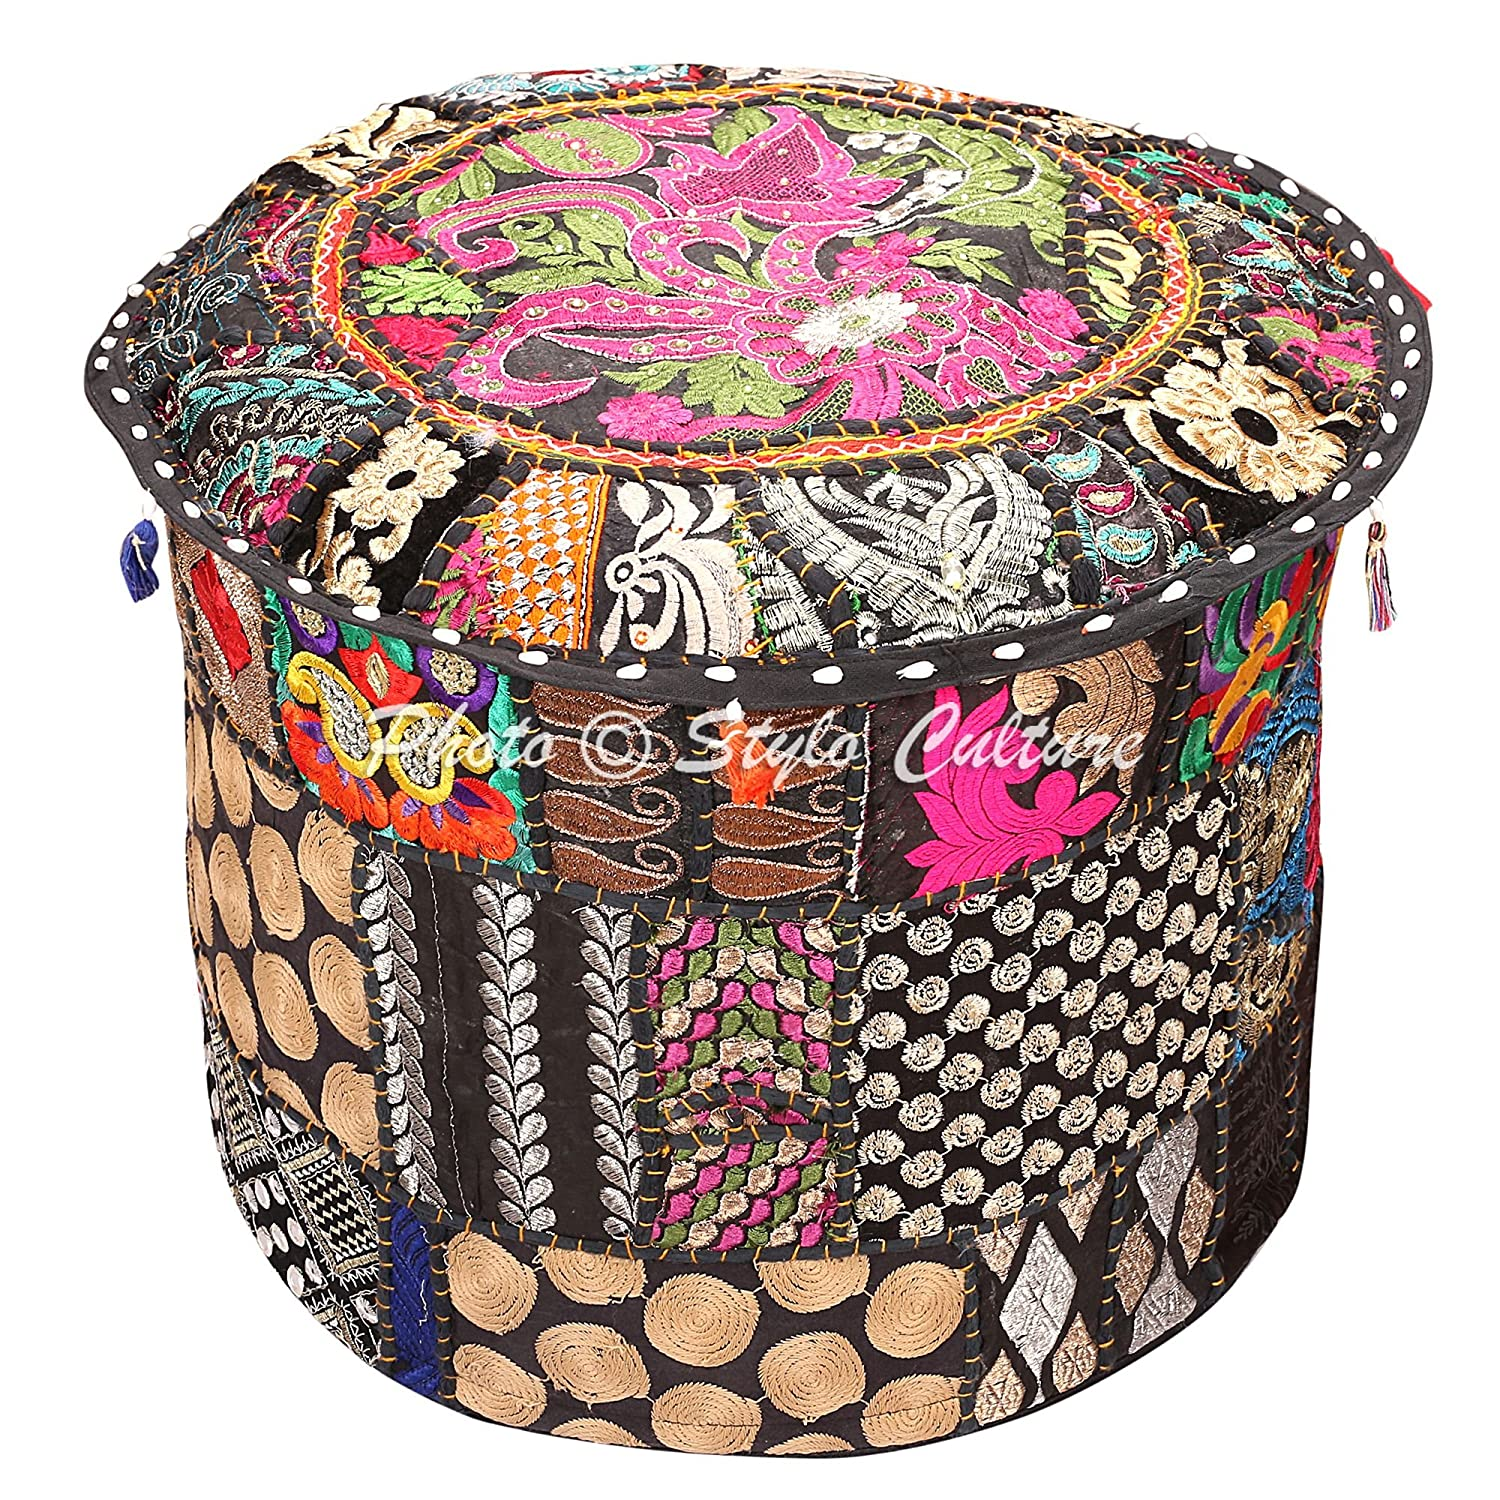 Indian Floor Ottoman Pouf Cover Round Patchwork Embroidered Pouffe Ottoman Cover Black Cotton Floral Traditional Furniture Footstool Seat Puff Cover (16x16x13) by Stylo Culture SC-POUF00110